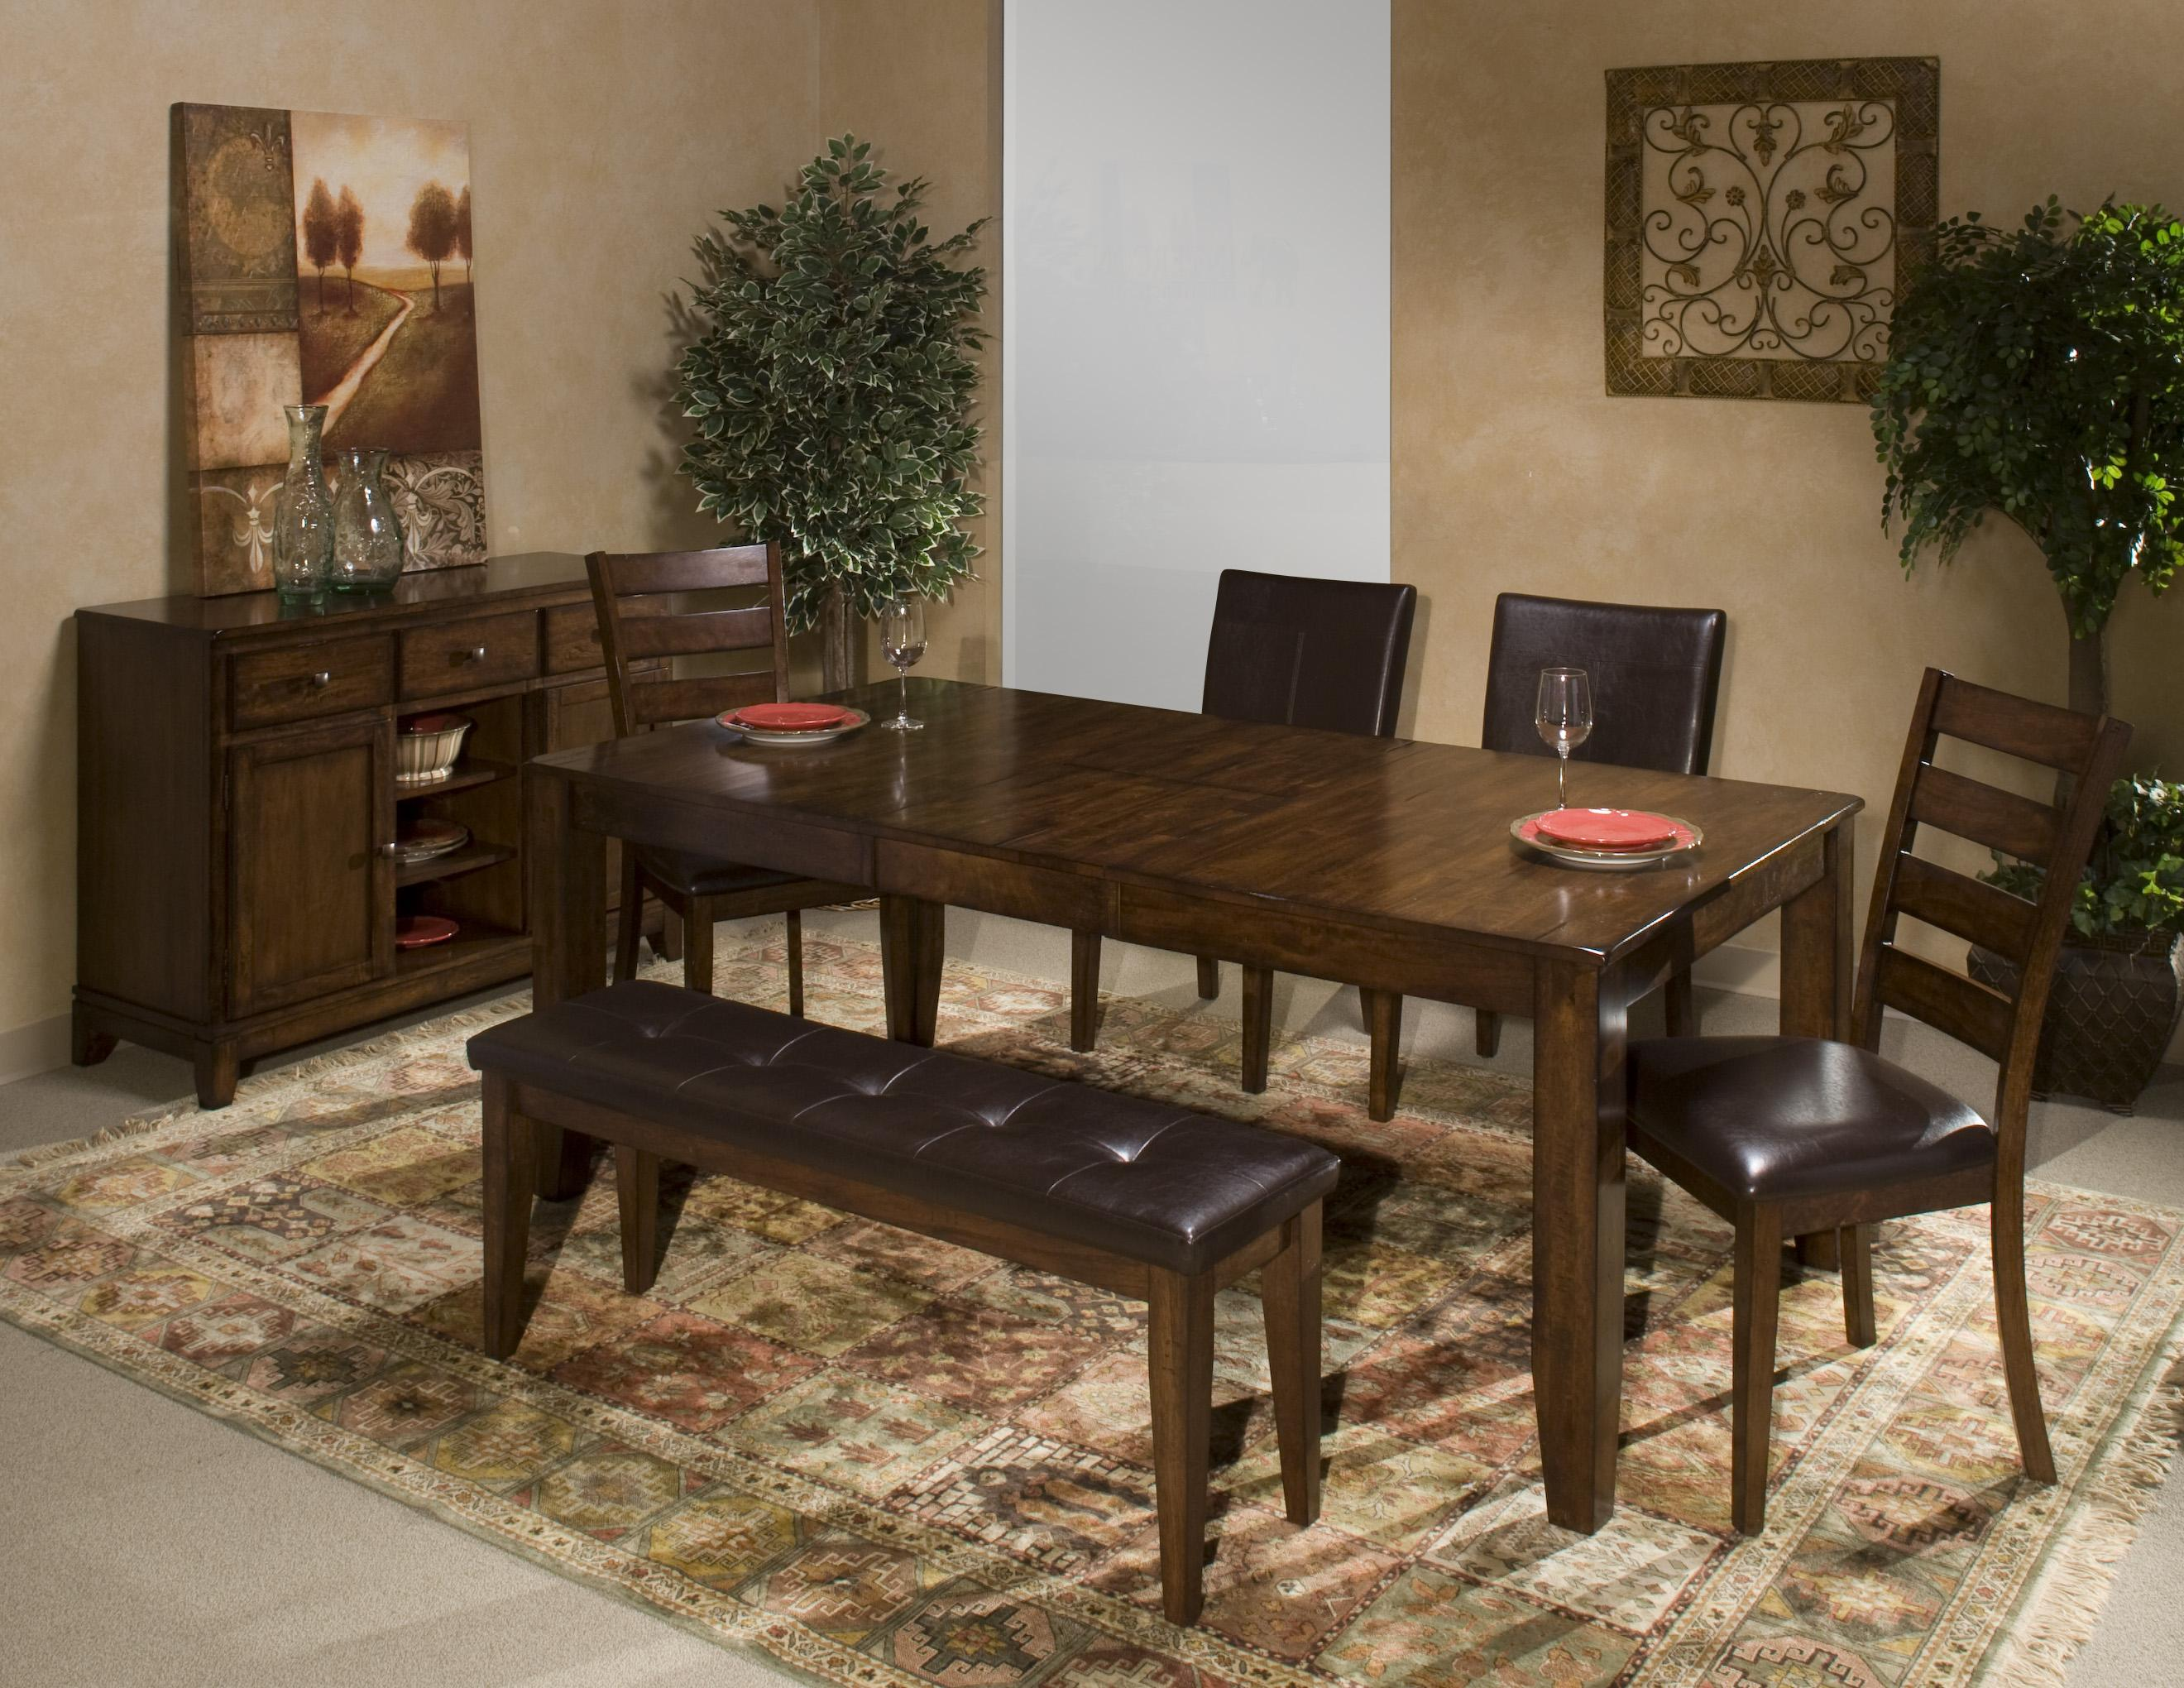 Kona Formal Dining Room Group by Intercon at Rife's Home Furniture